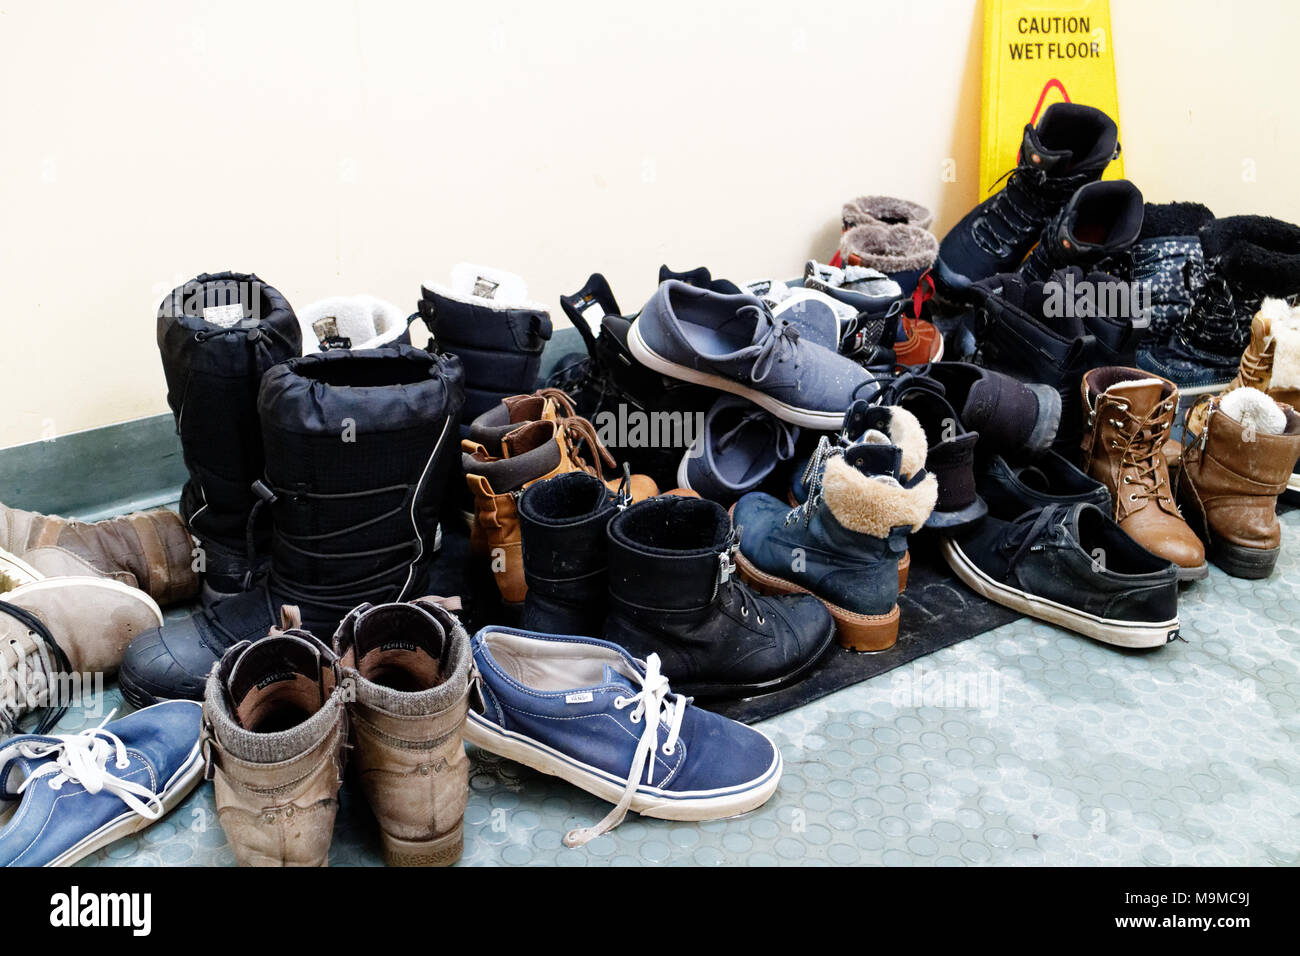 An untidy pile of shoes and  winter boots - Stock Image